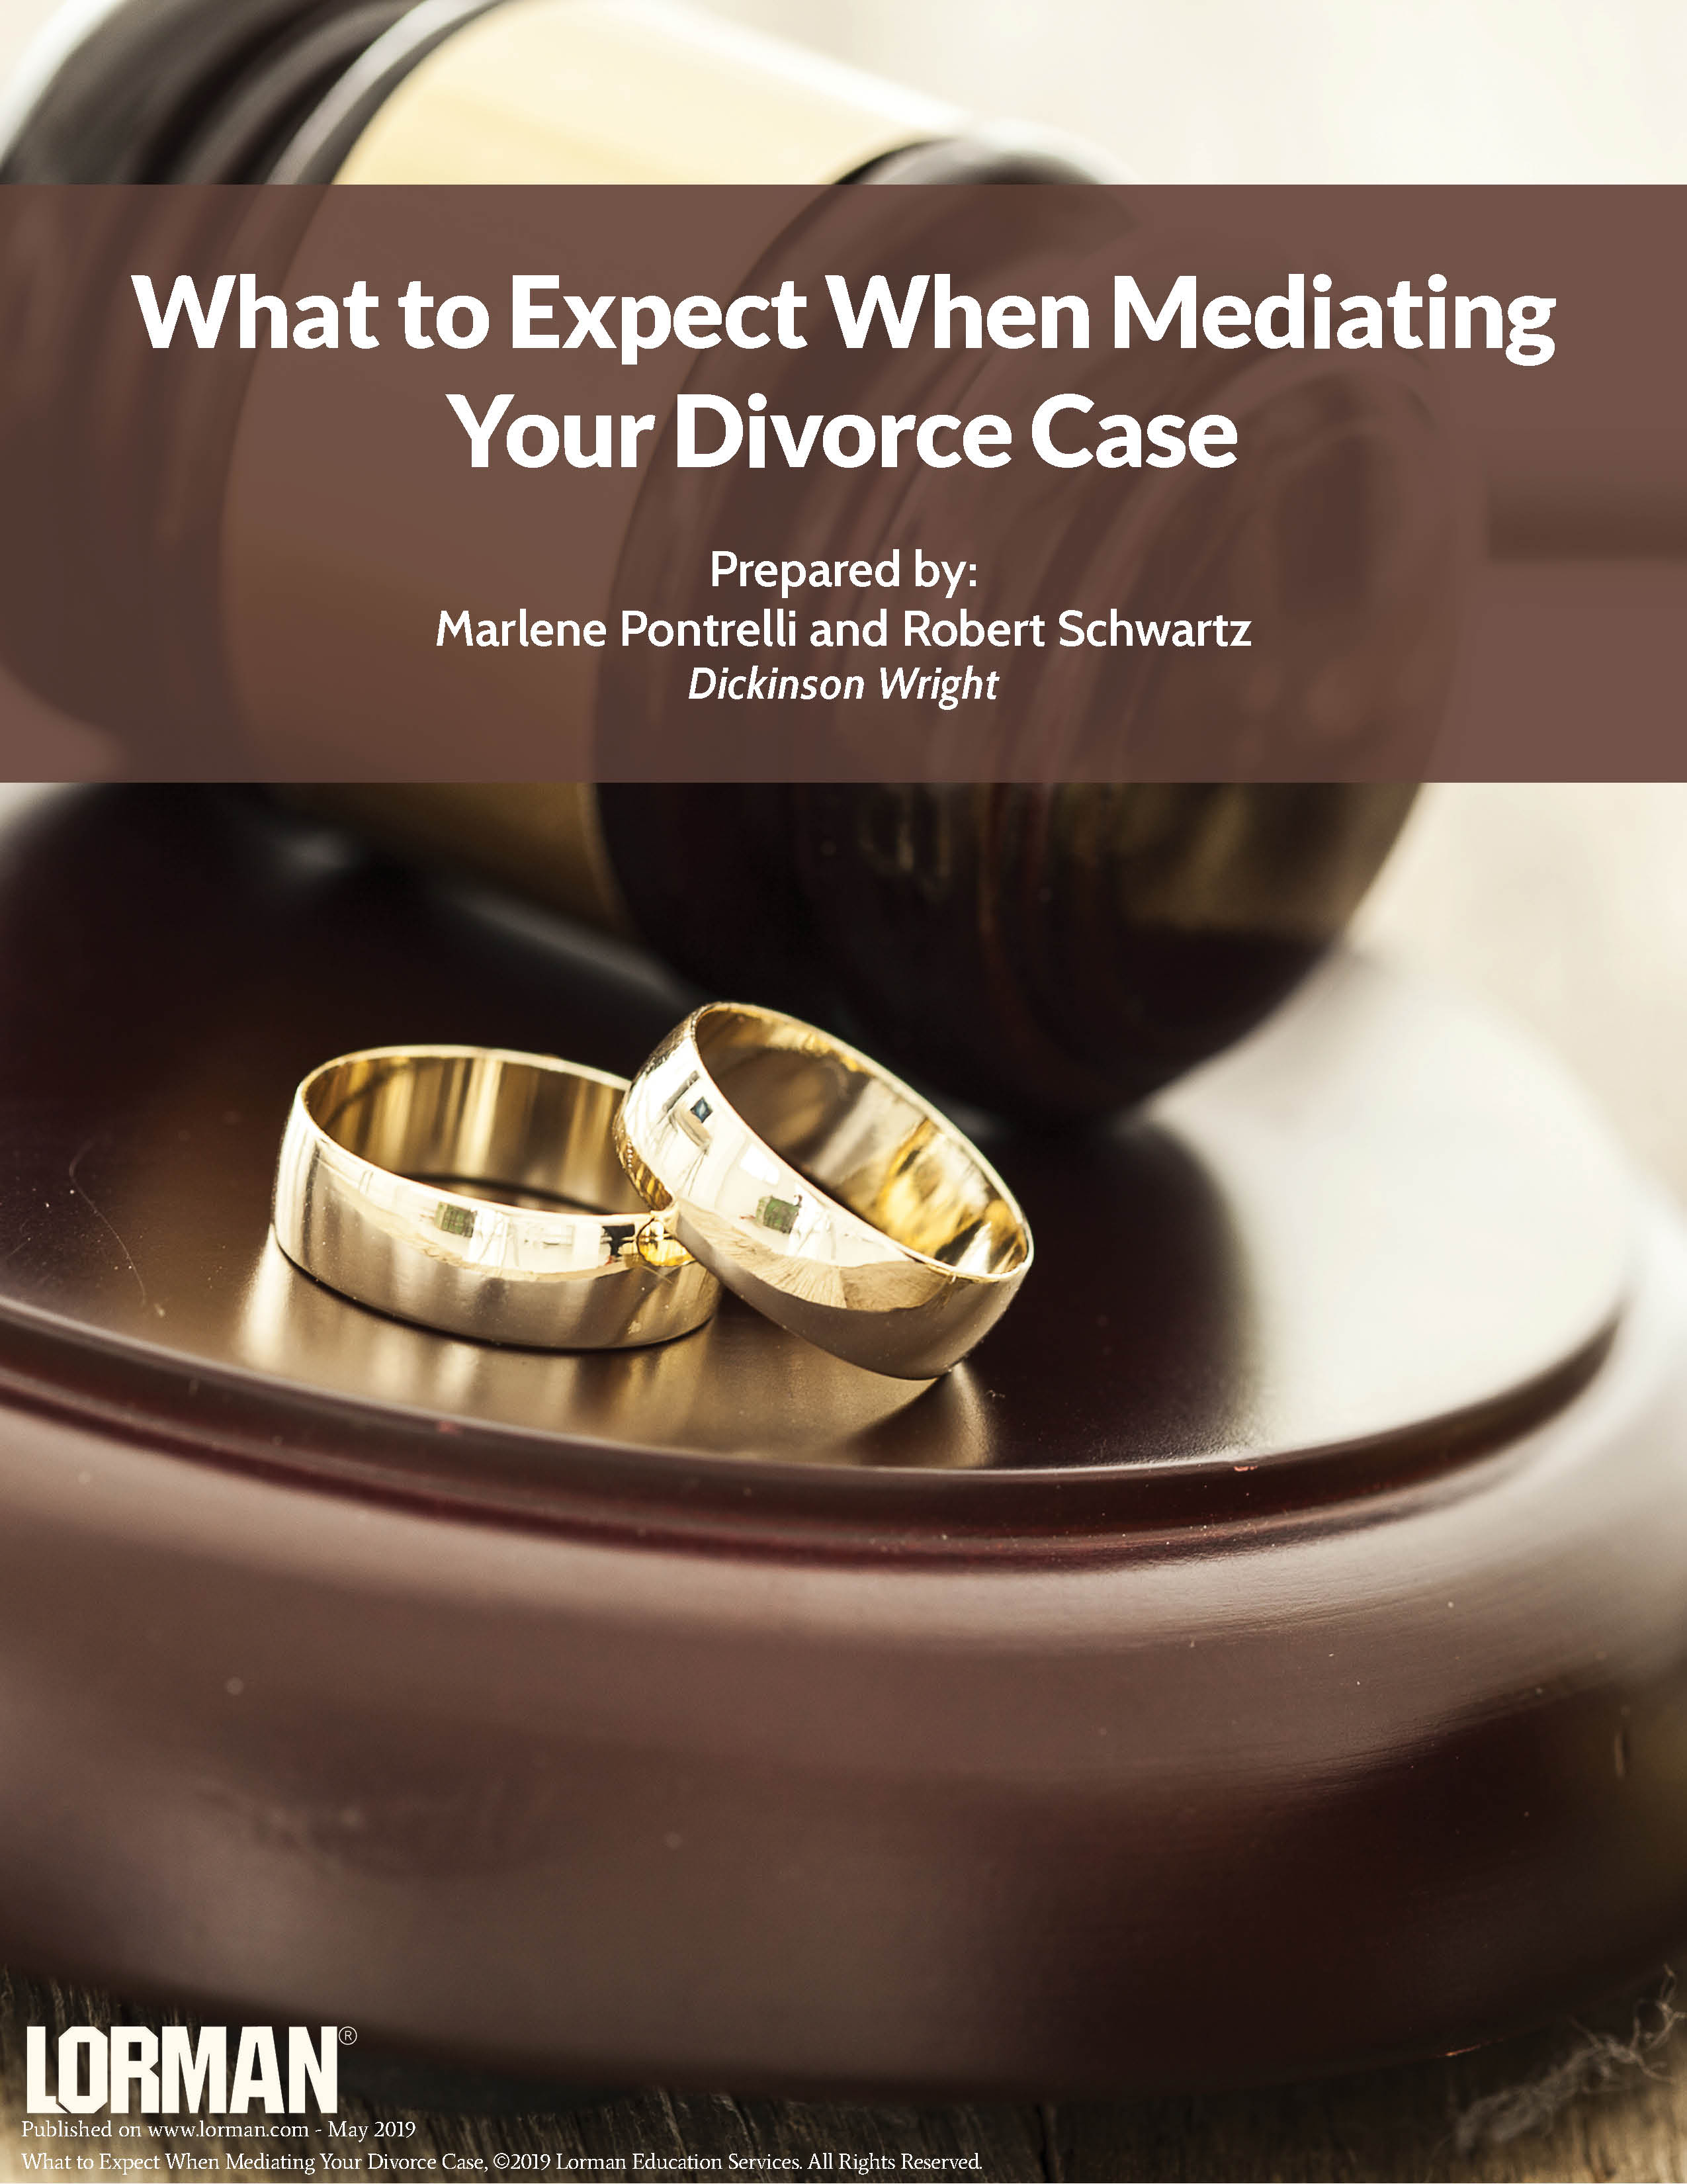 What to Expect When Mediating Your Divorce Case